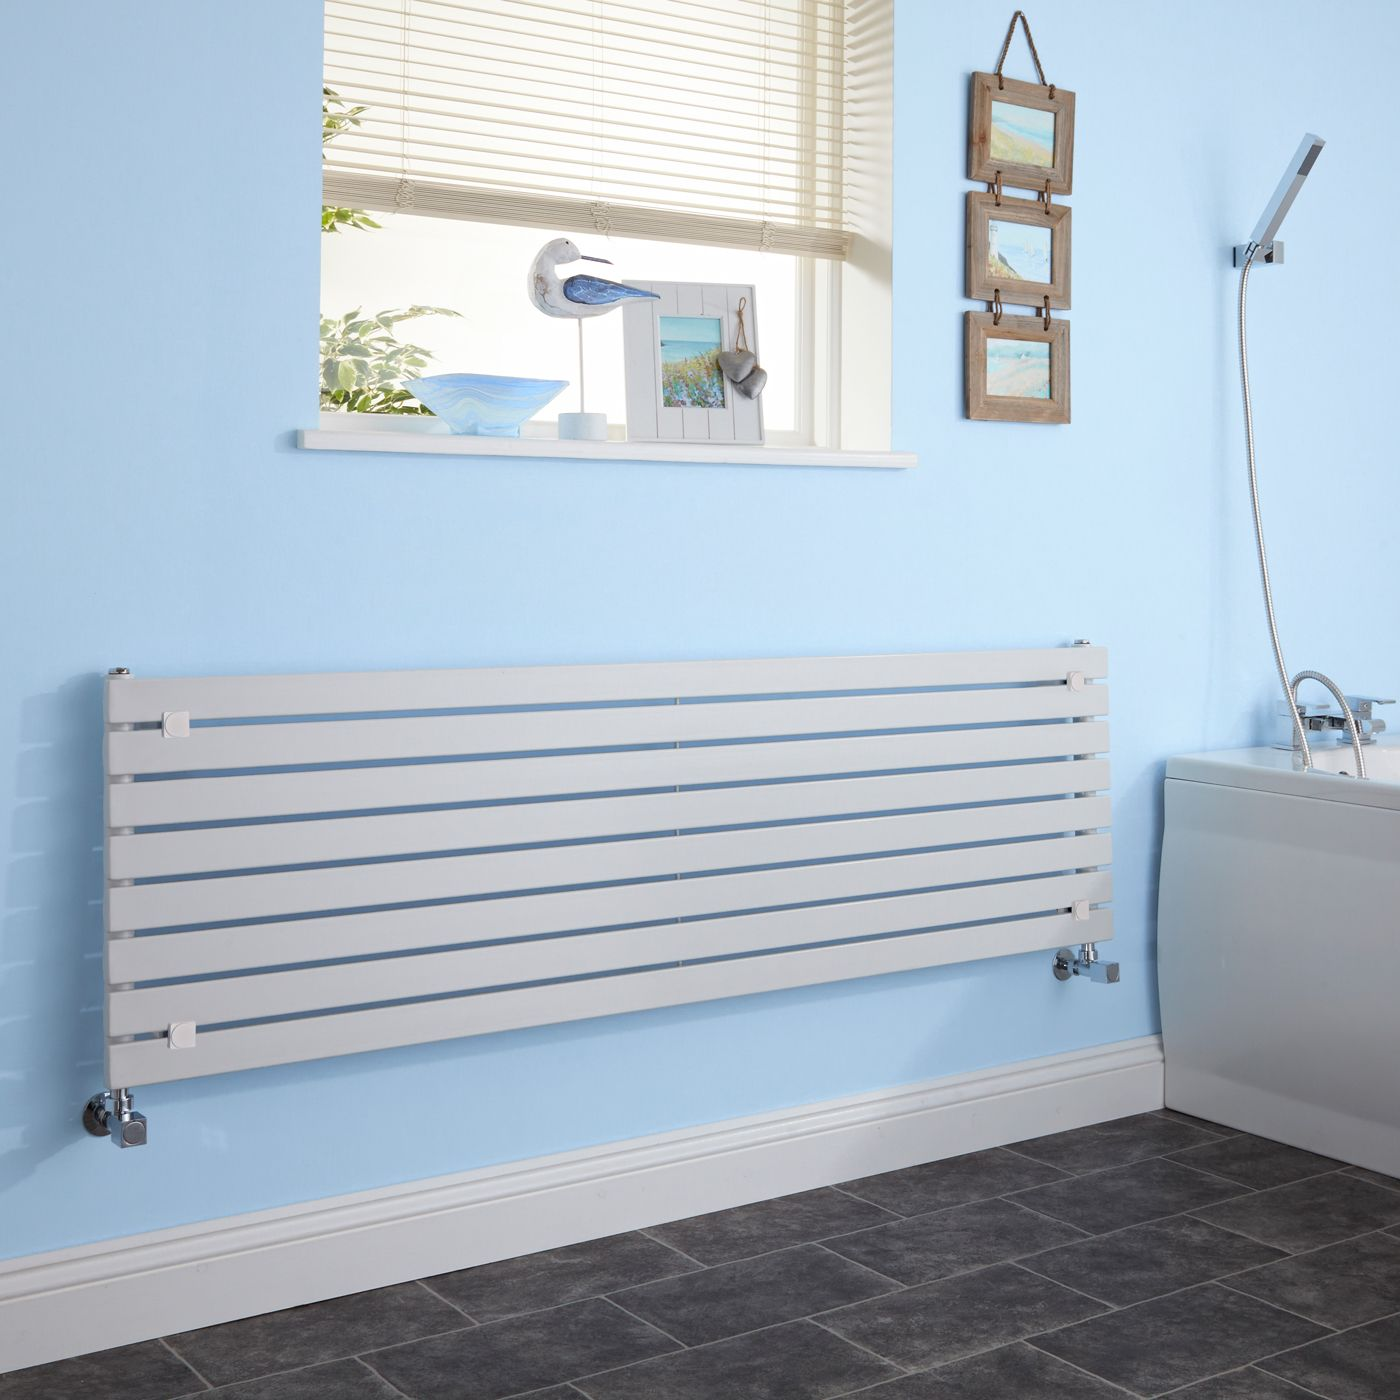 Milano Capri - White Horizontal Flat Panel Designer Radiator 472mm x 1780mm